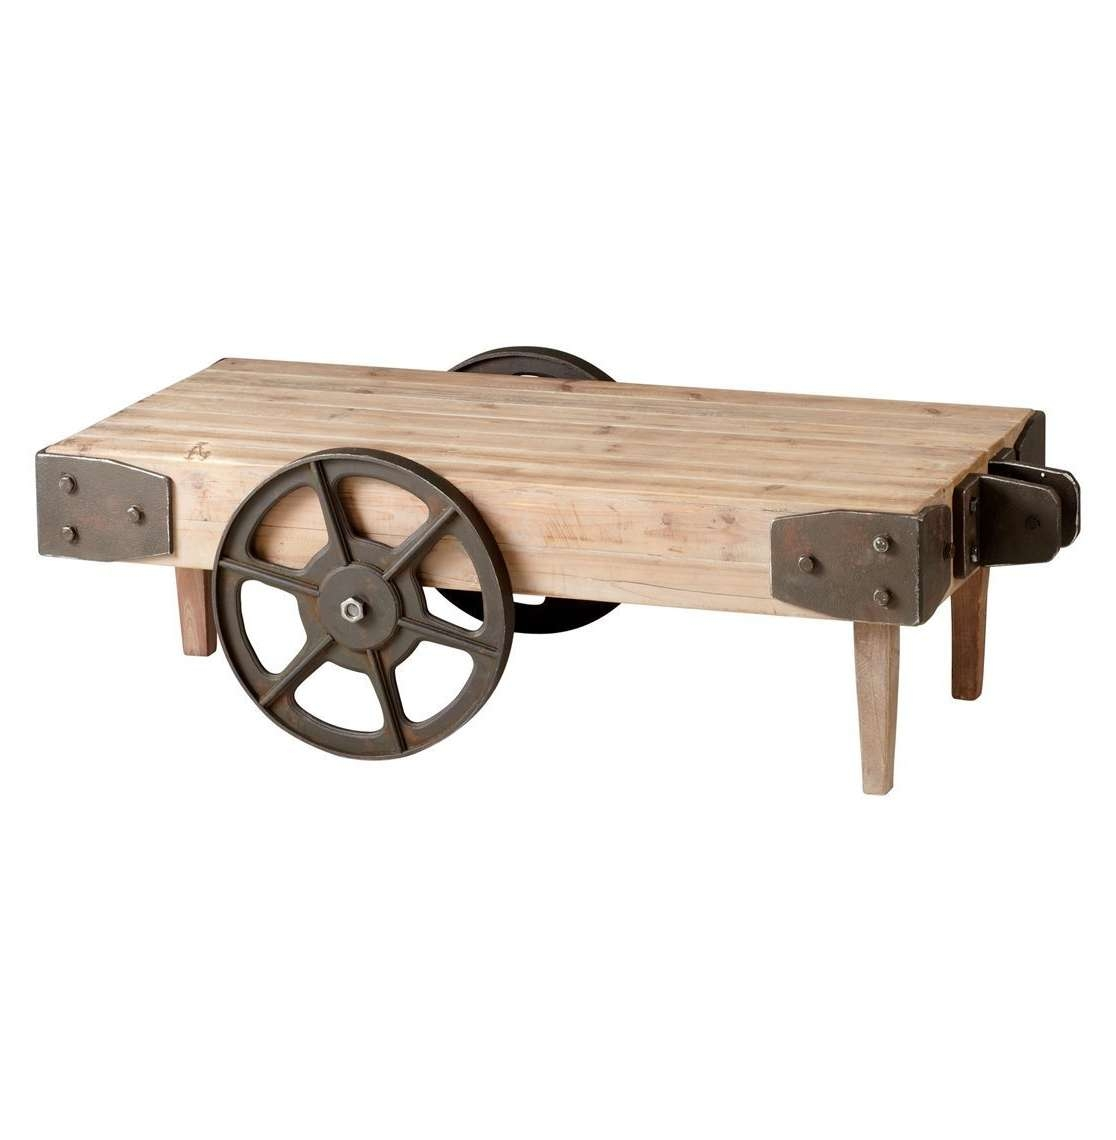 Most Current Coffee Tables With Wheels Inside Rustic Coffee Table With Wheels – Writehookstudio (View 17 of 20)